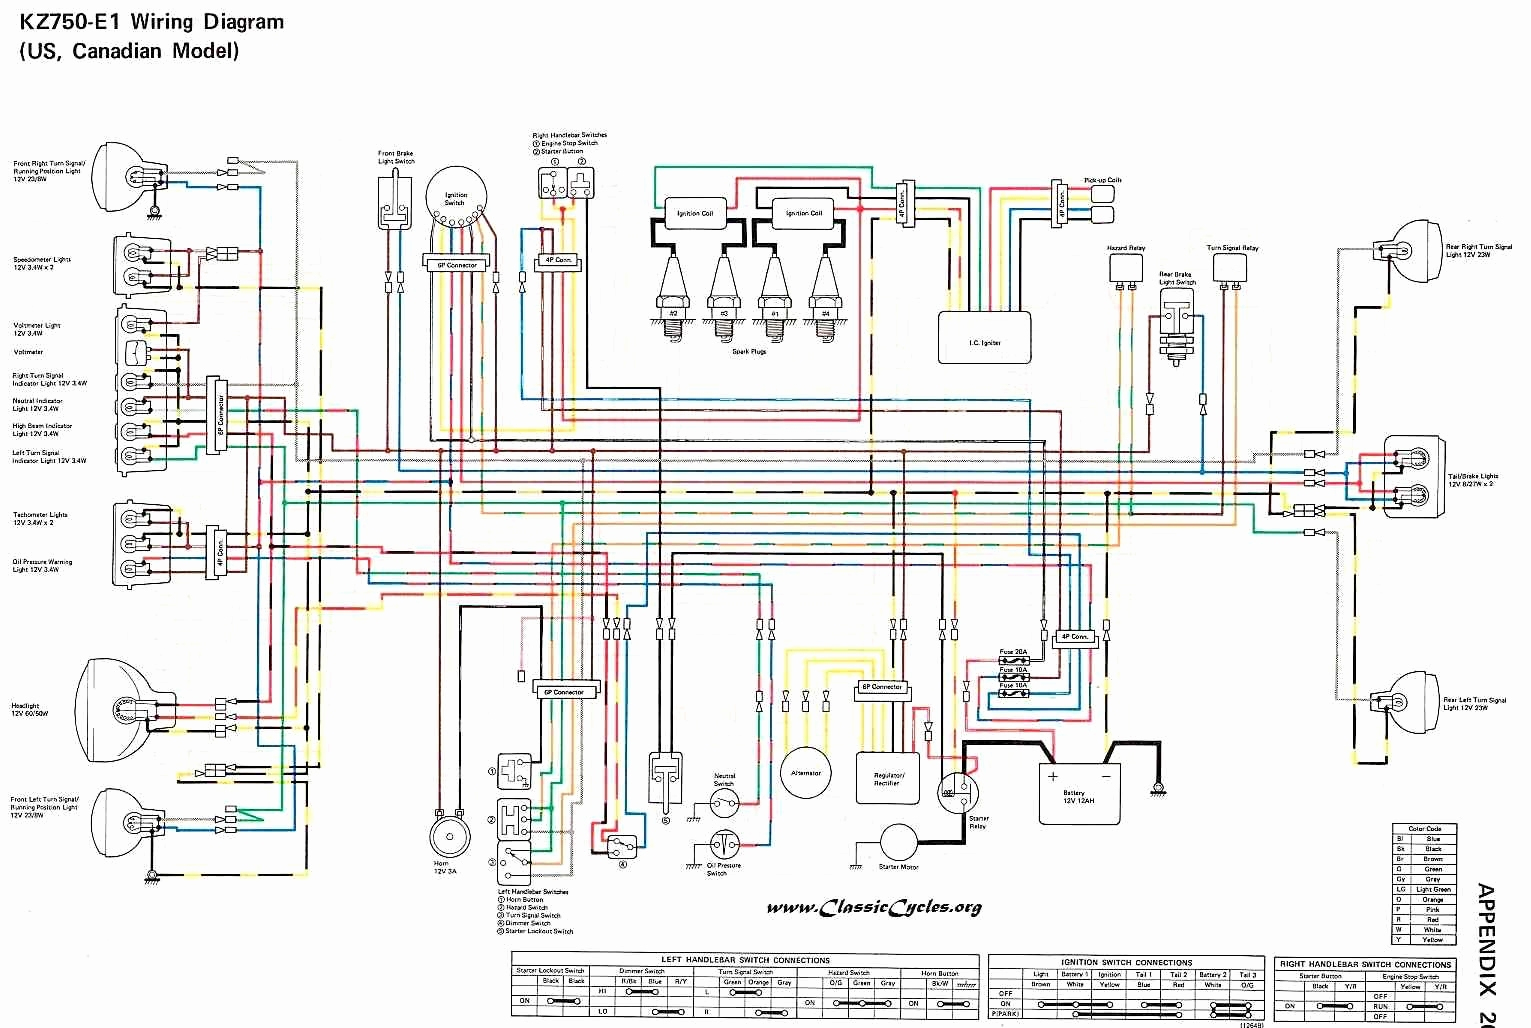 12 Volt Relay Wiring Diagram - Wiring Diagrams